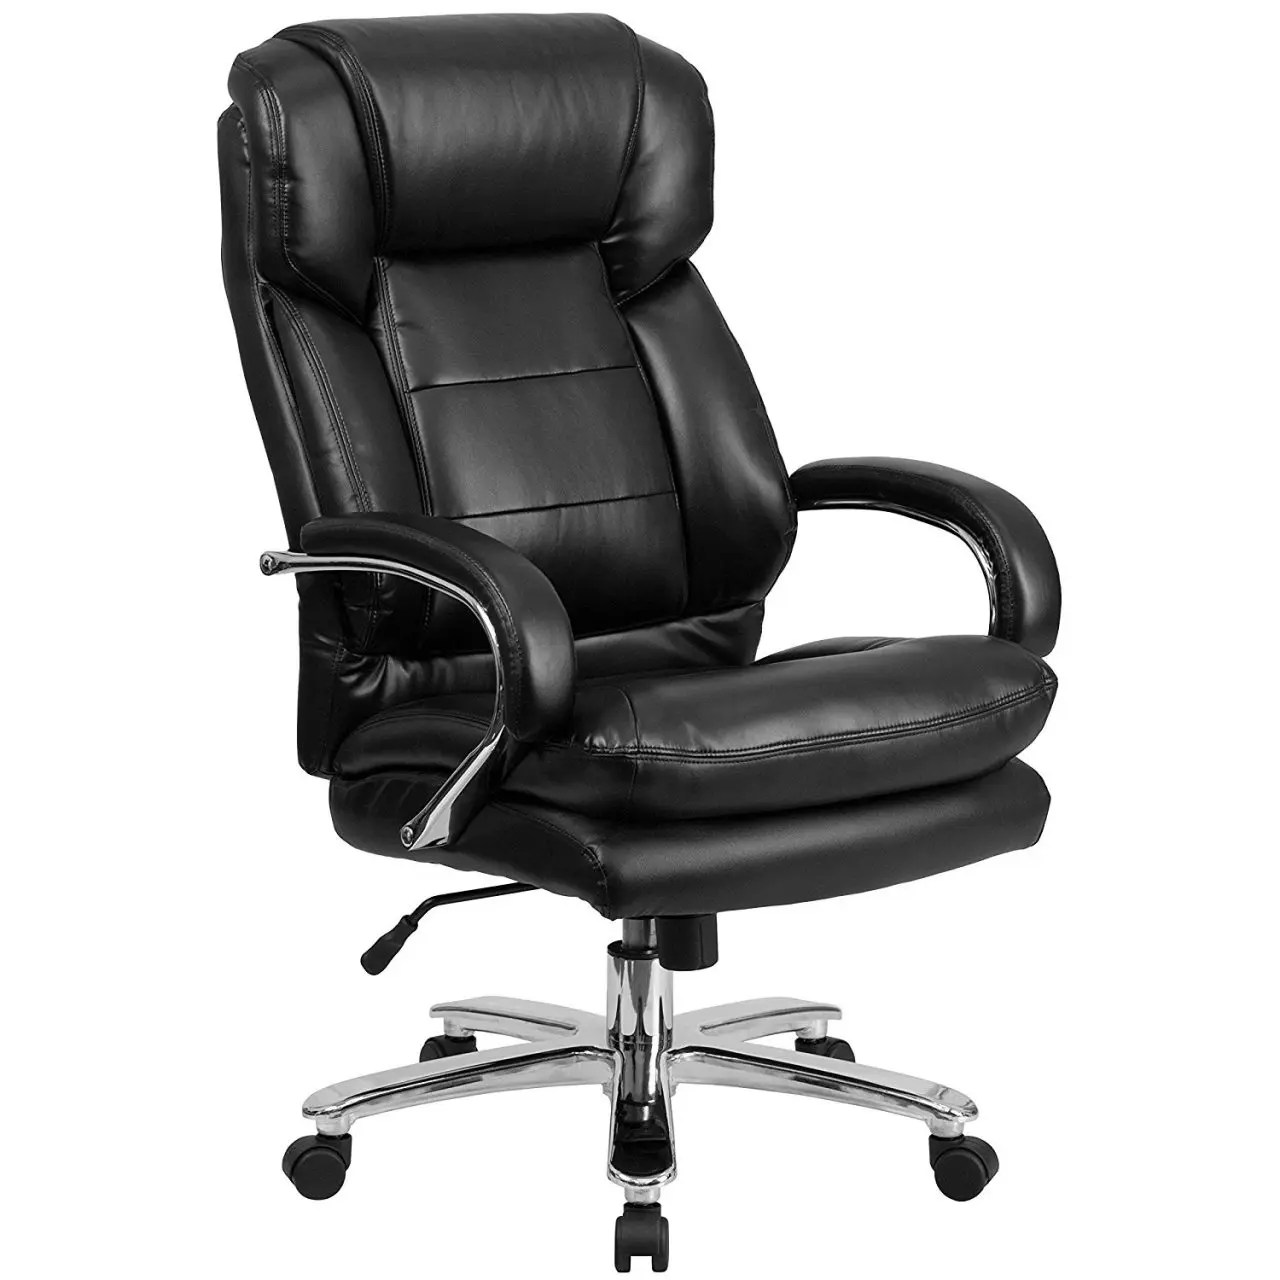 Heavy Duty Office Chair 500 Lb Heavy Duty Office Chair Best Heavy Duty Stuff